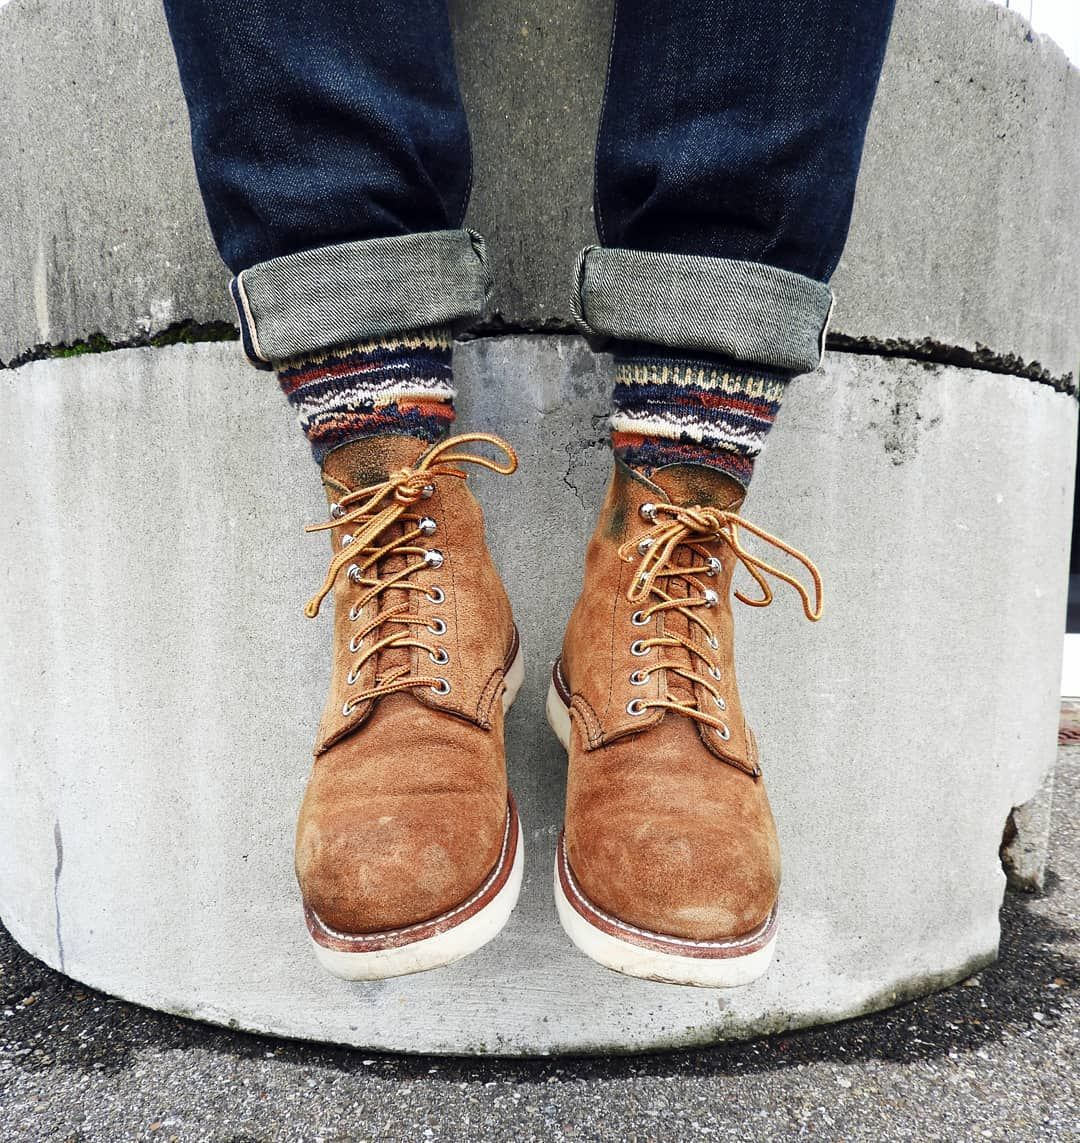 Reposting Calgeary Thursday Hangs Rgt Sk 12 5 Oz Tinted Weft Chupsocks Dia Socks Redwingheritage Roughouts 818 Red Wing Shoes Classy Shoes Boots